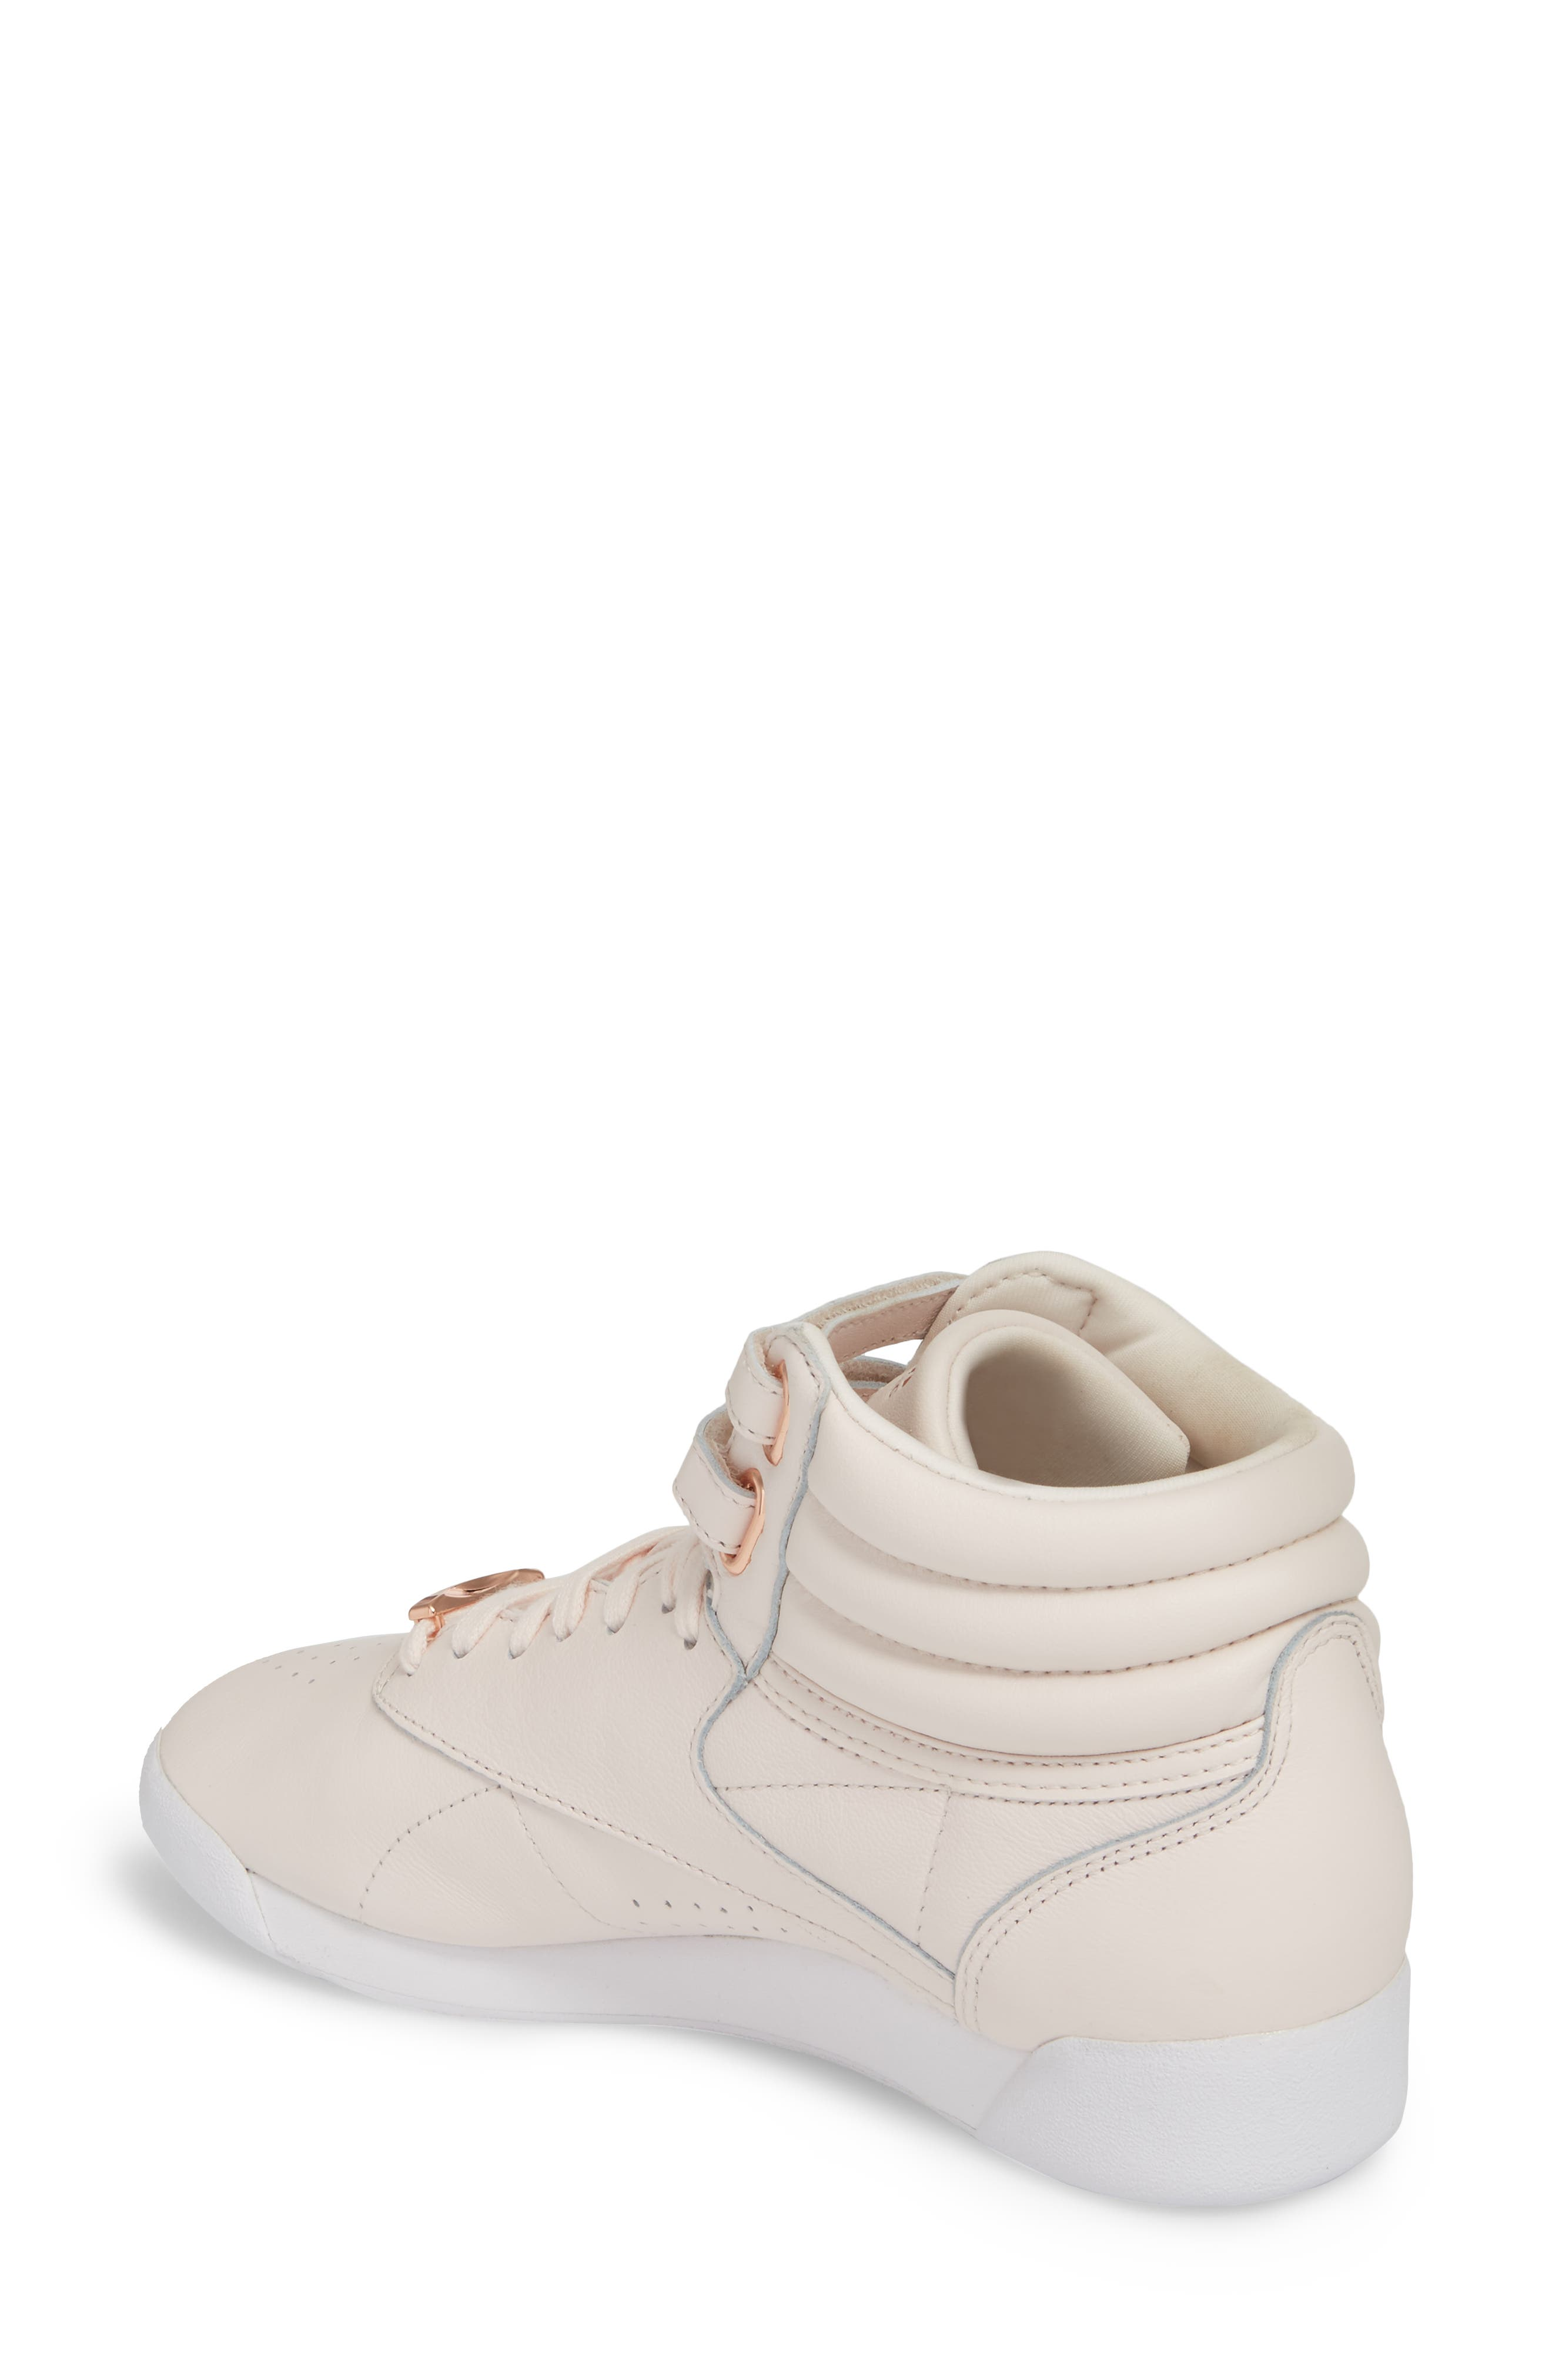 Freestyle Hi Muted Sneaker,                             Alternate thumbnail 2, color,                             Pale Pink/ White/ Cool Shadow